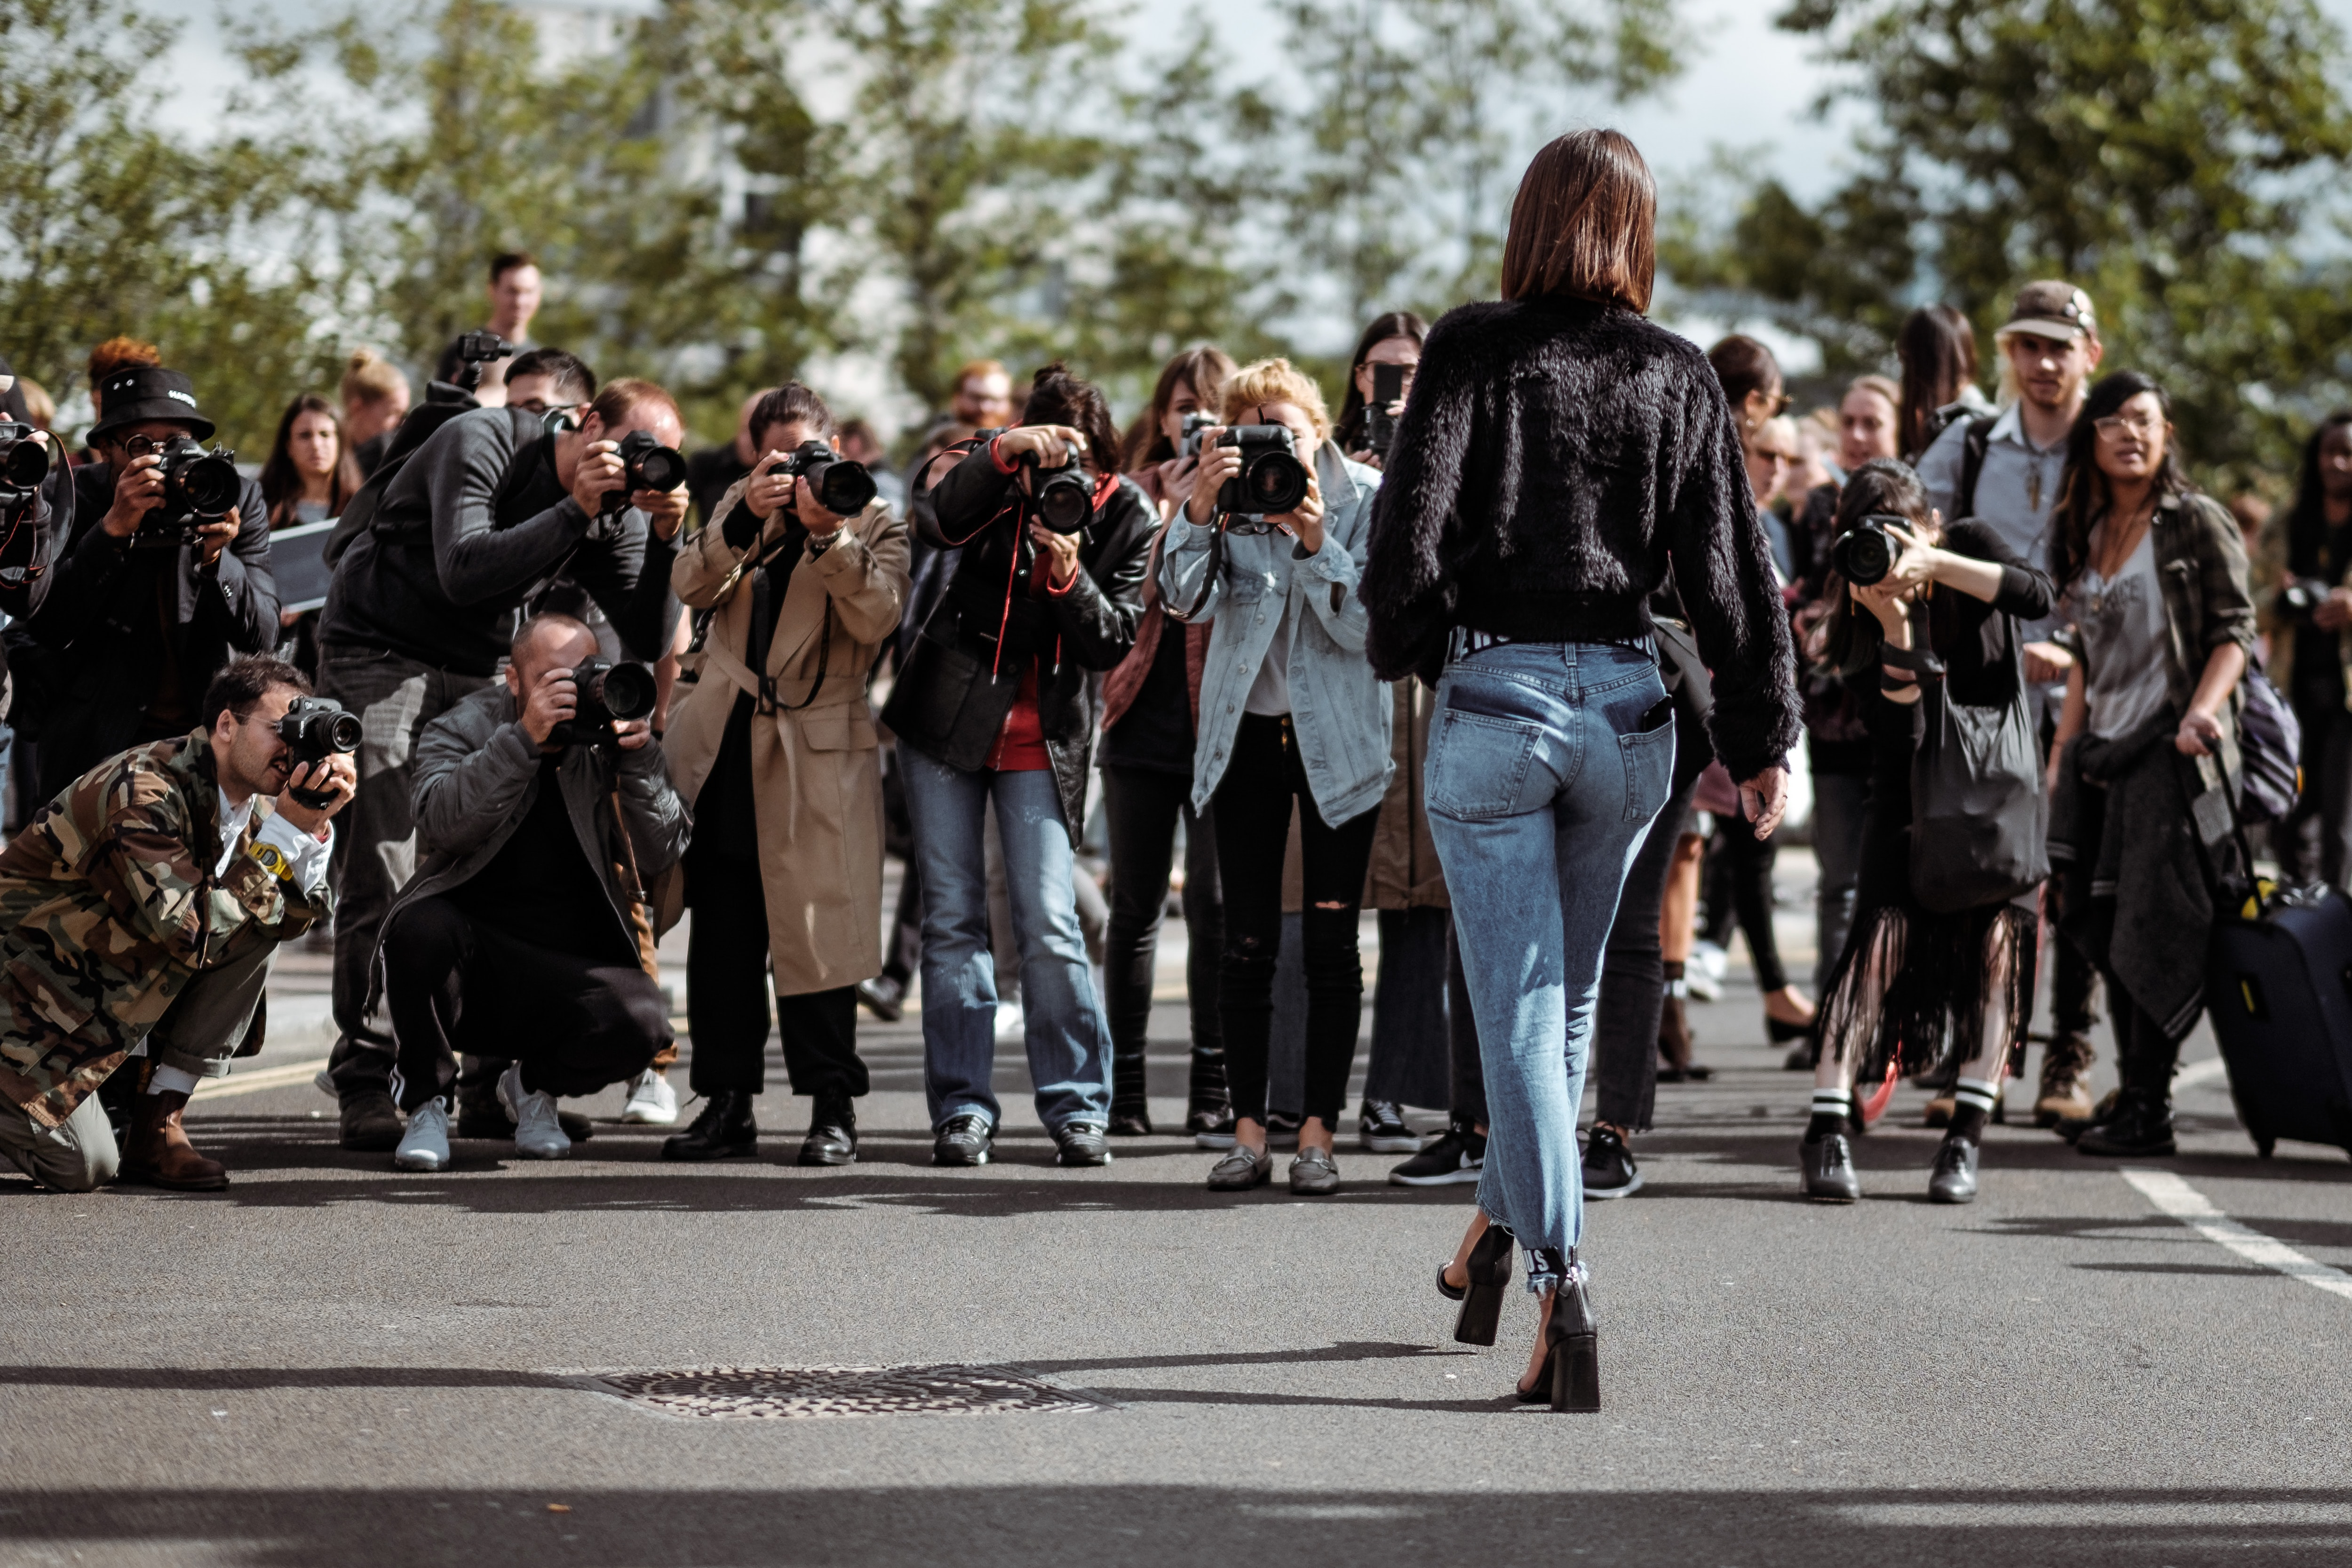 A photo of a woman from behind being photographed by a large group of photographers.